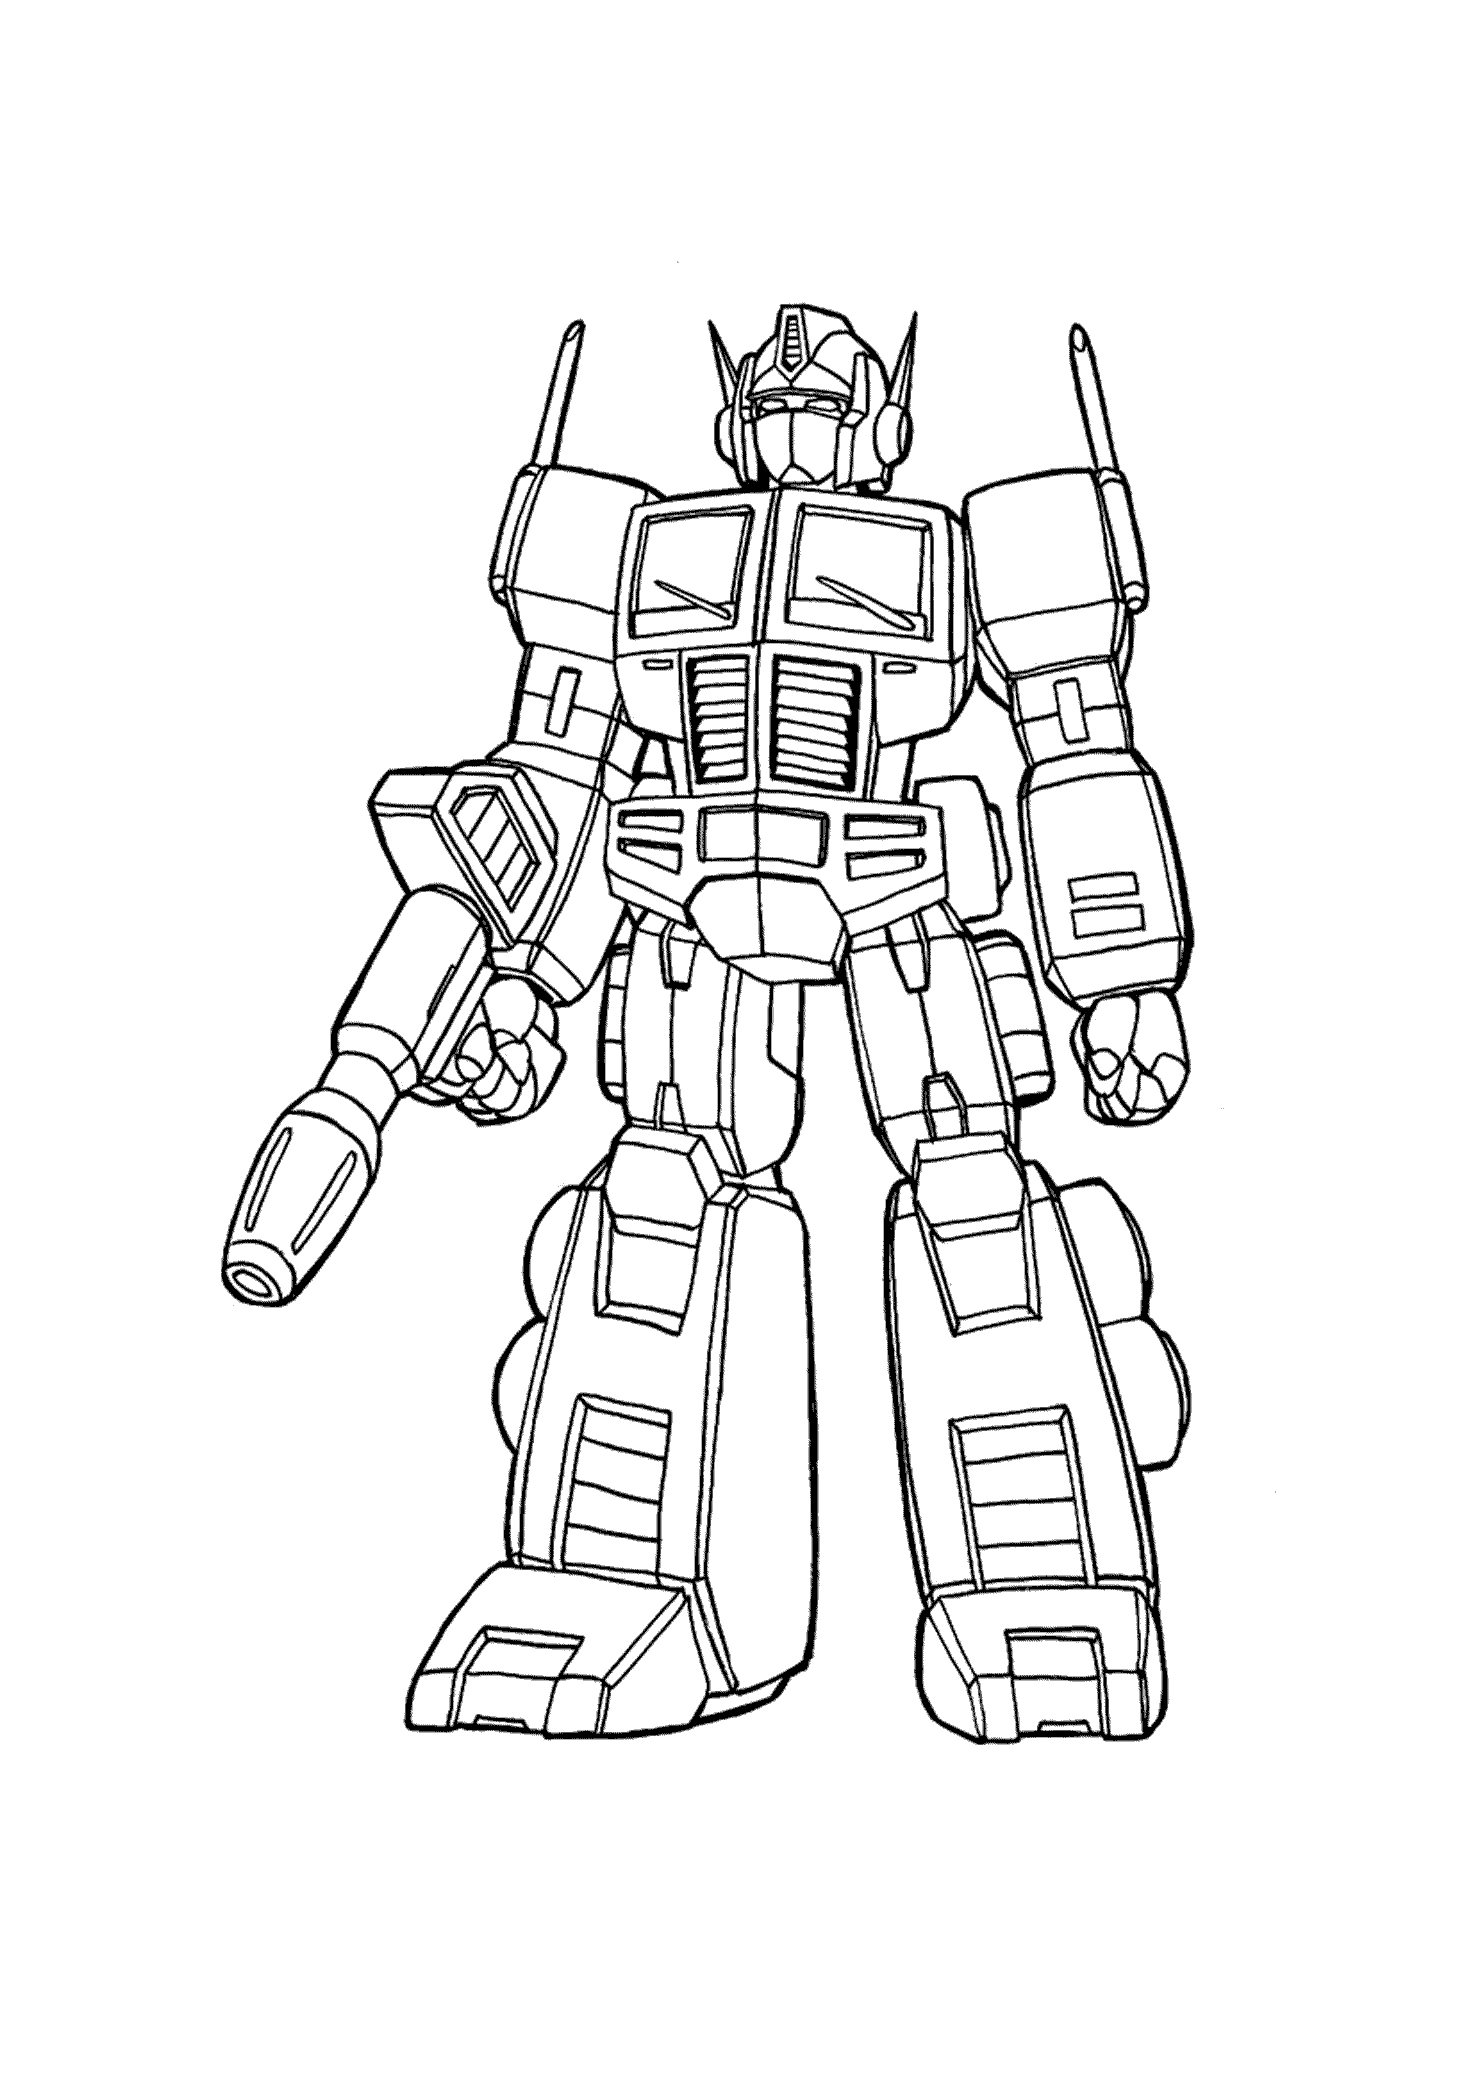 24 Transformers Coloring Pages Selection Free Coloring Pages Part 2